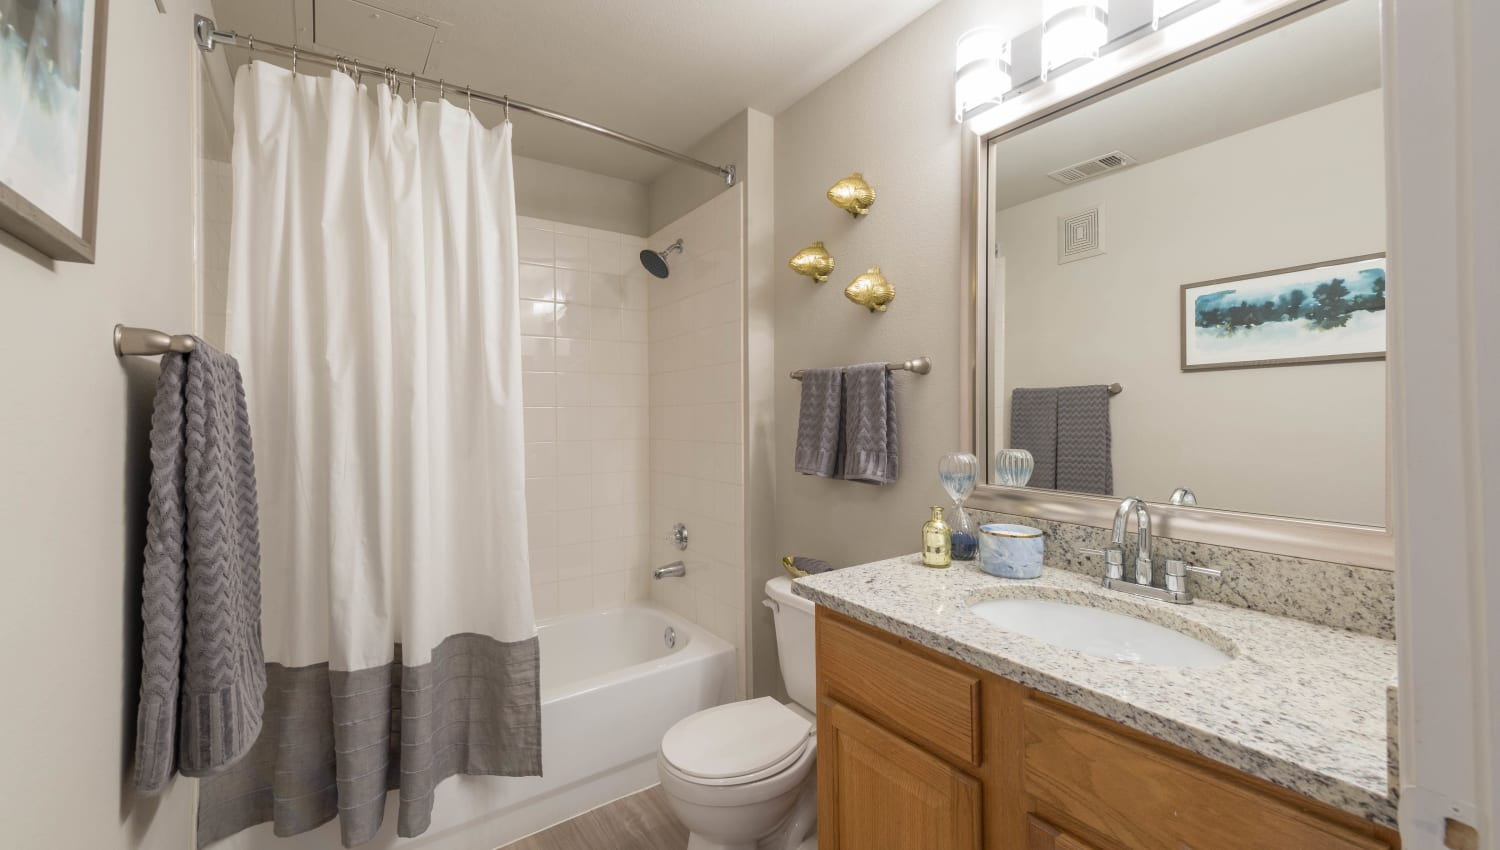 Tiled shower and a granite countertop in a model apartment's bathroom at Olympus Stone Glen in Keller, Texas